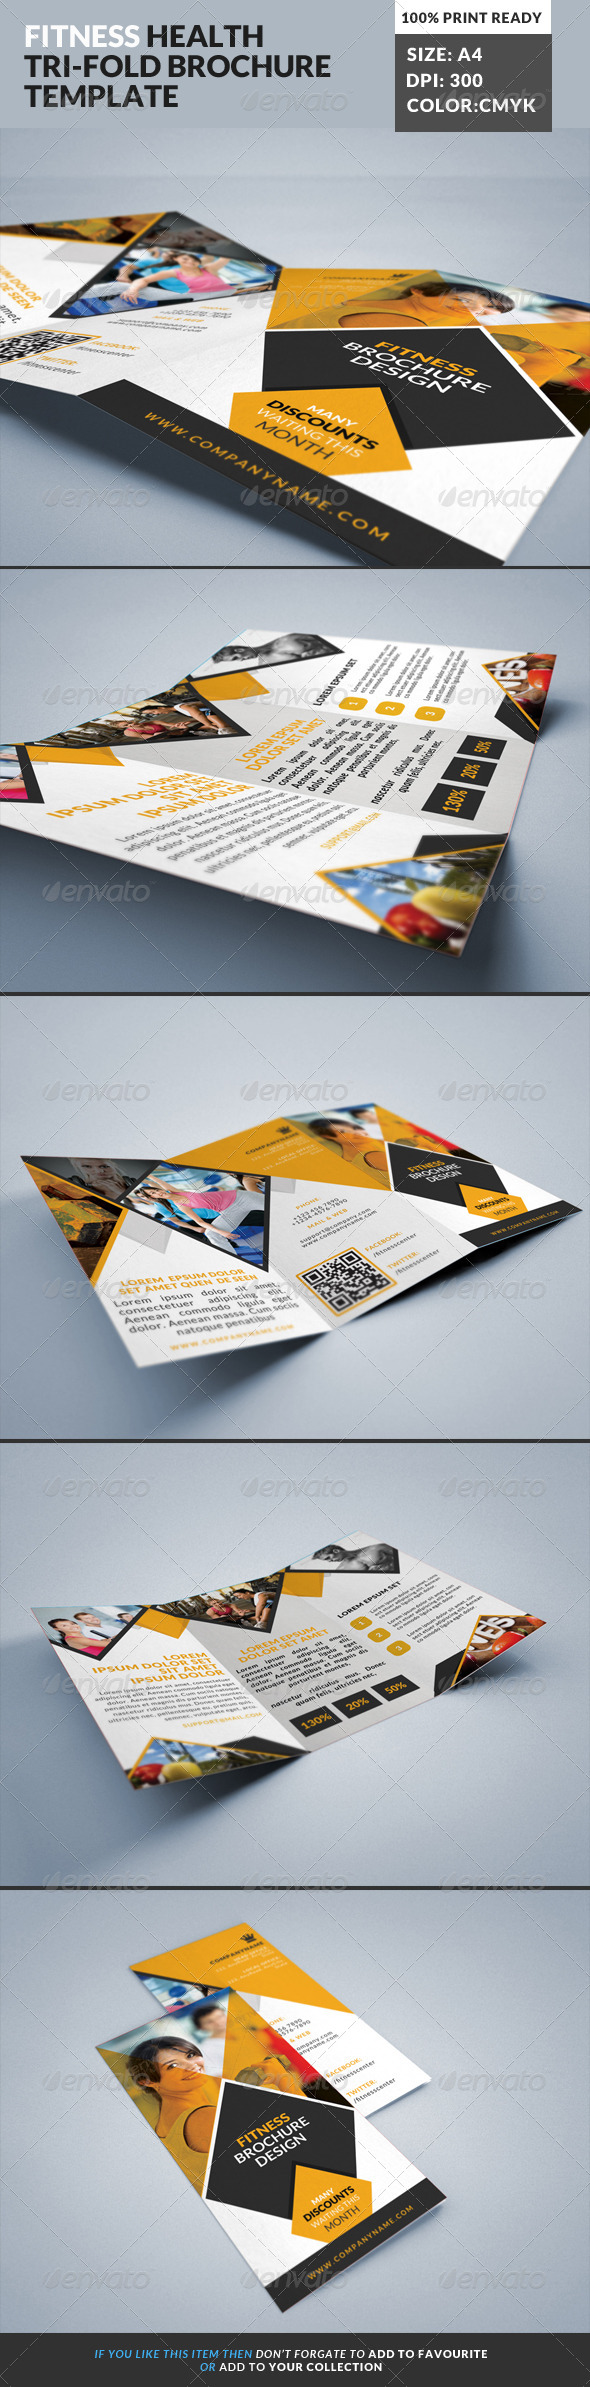 Fitness Gym Tri-Fold Brochures Template 2 - Corporate Brochures